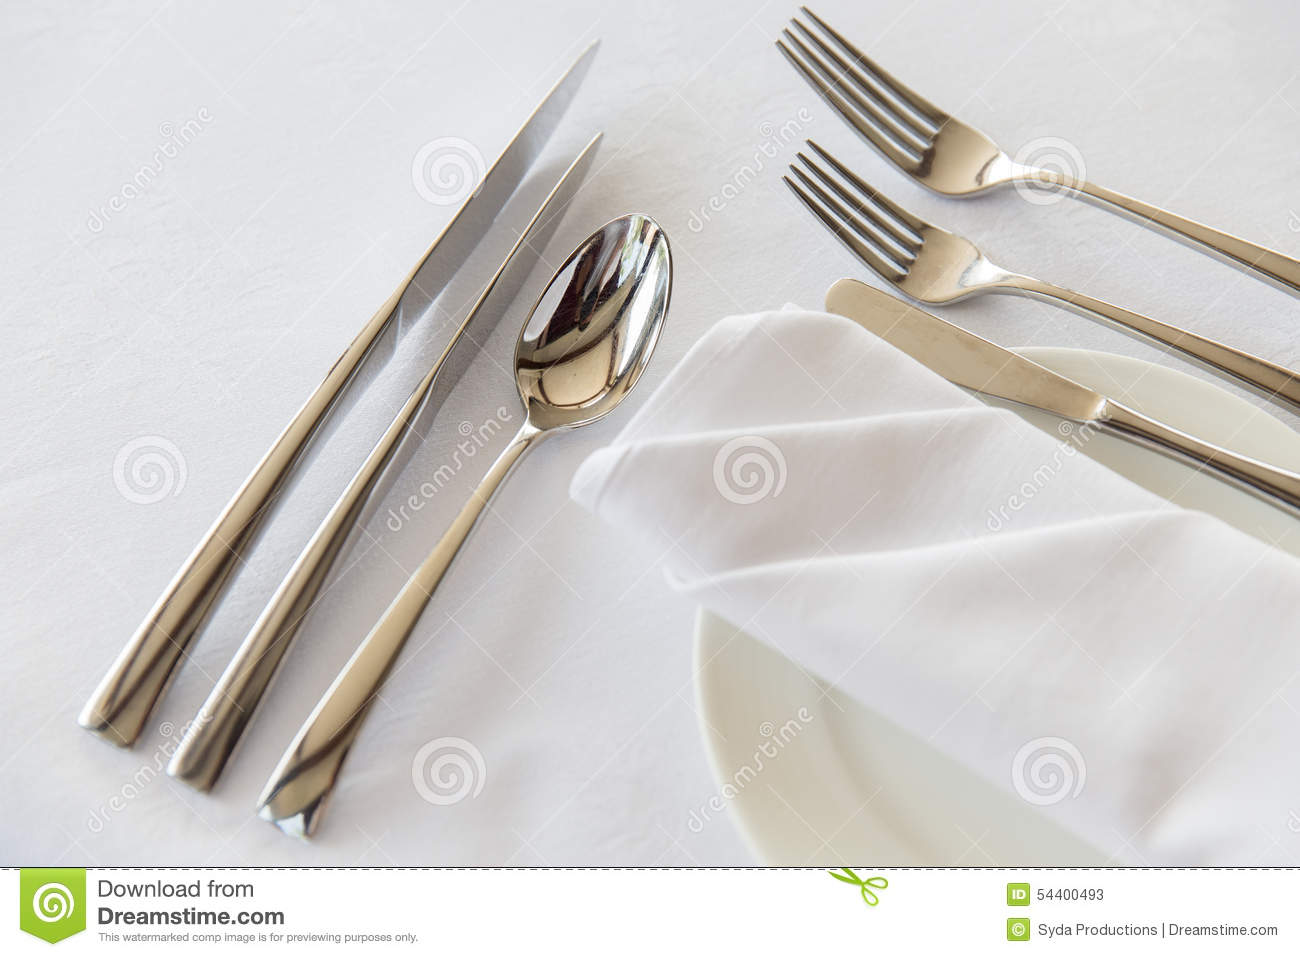 how to keep silver cutlery clean